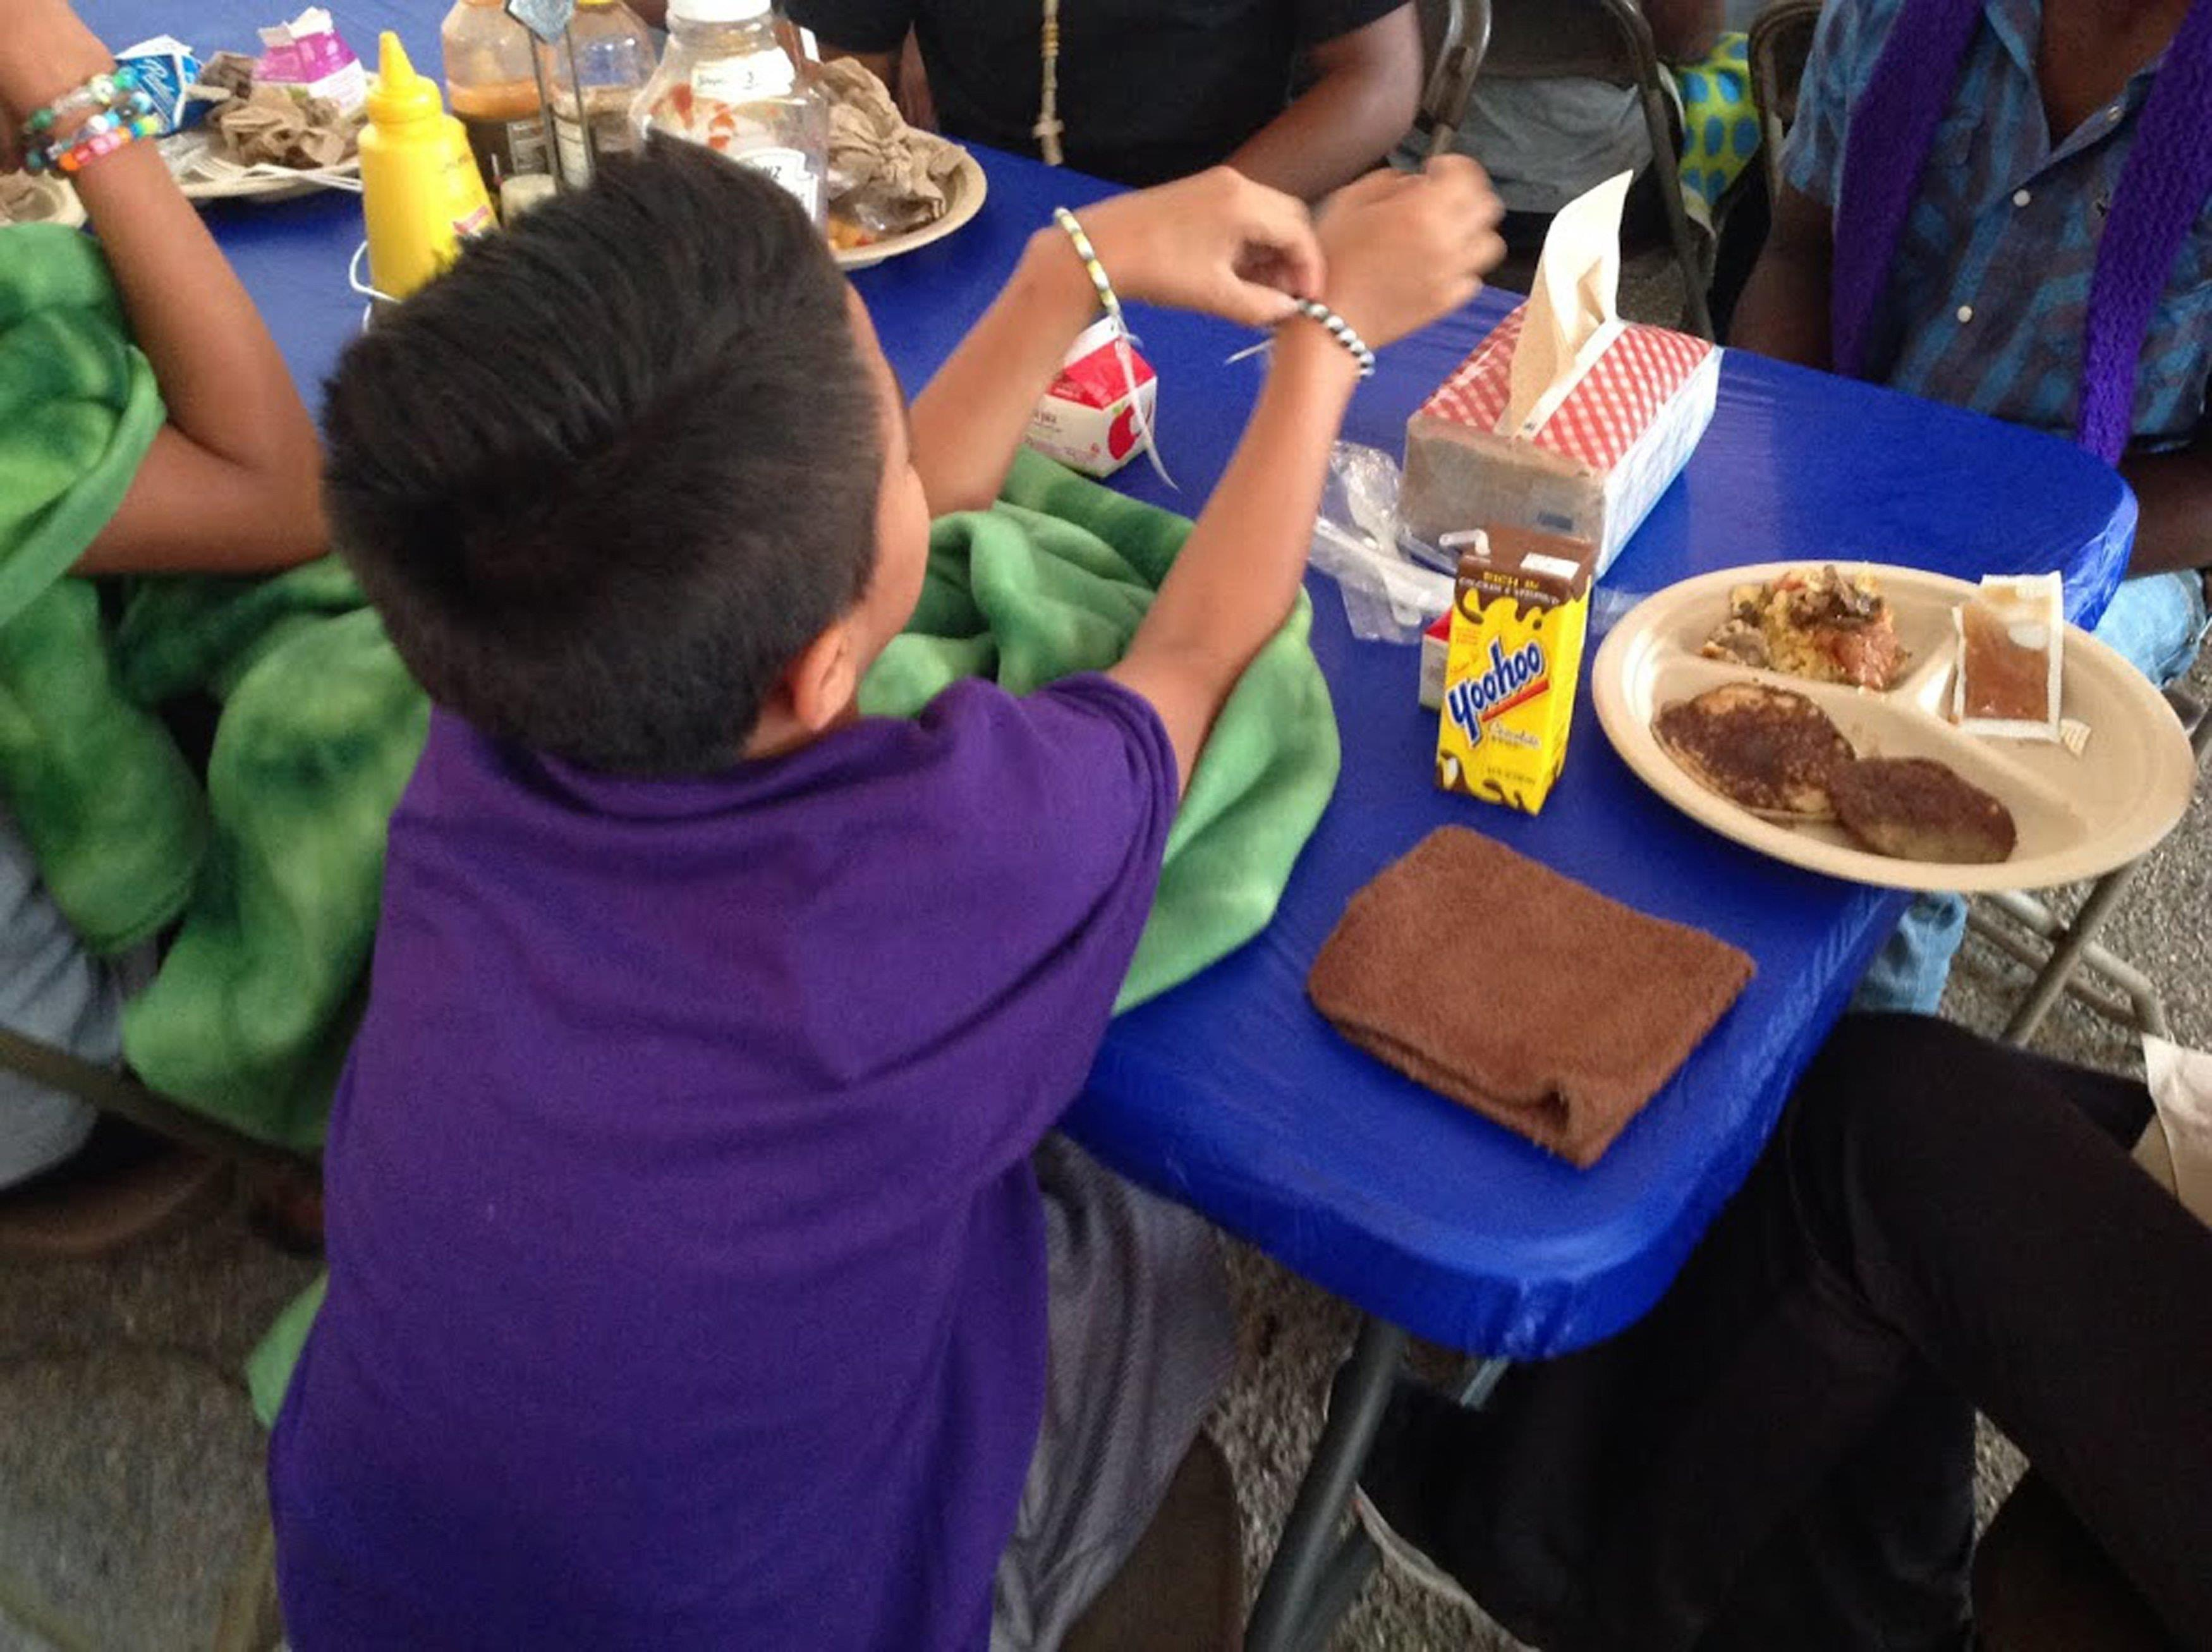 Image: A migrant child sits during a meal at the Naval Base Ventura County Temporary Shelter in Port Hueneme, California